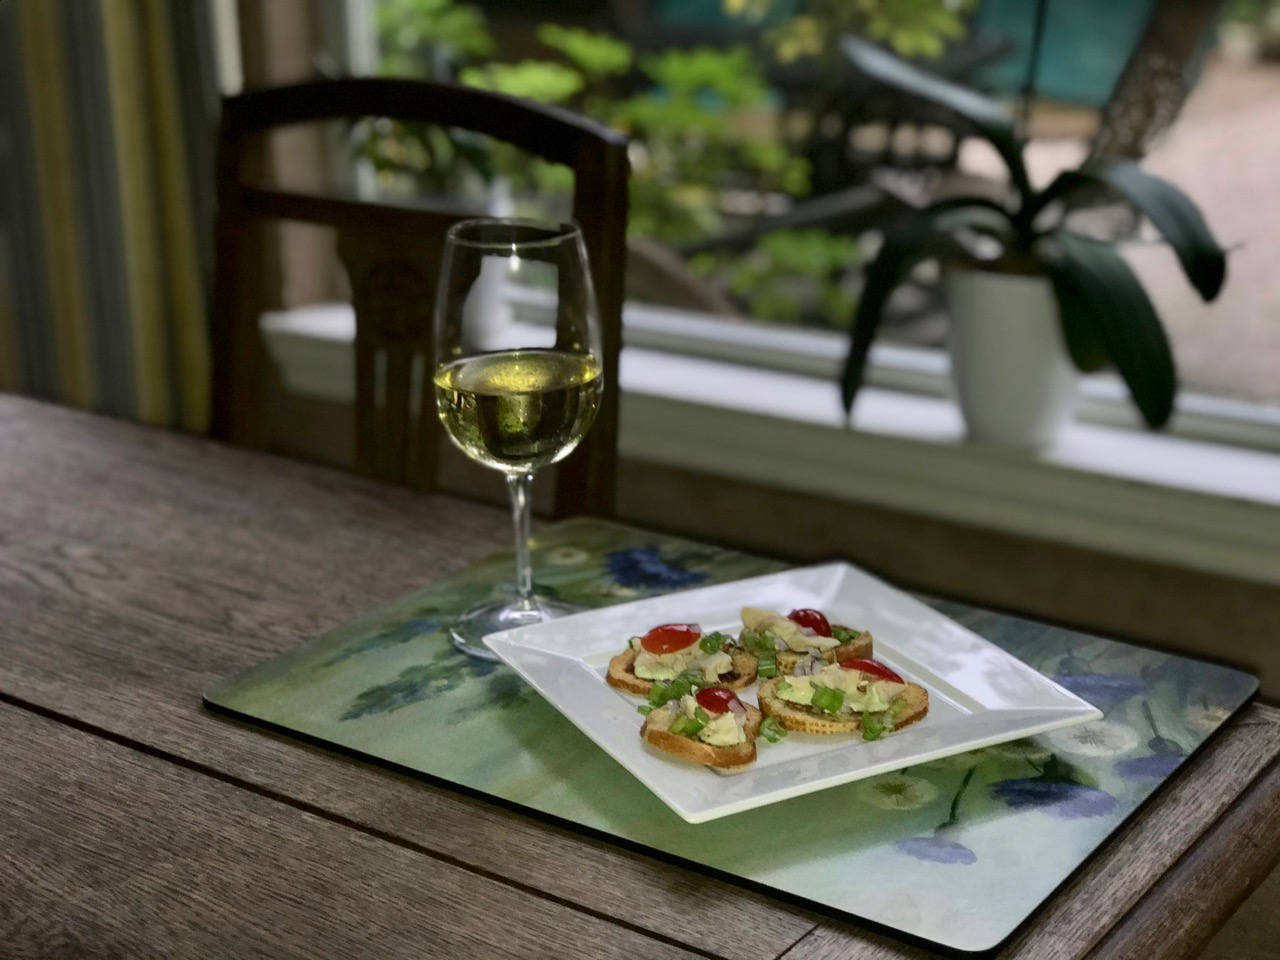 Crostini appetizer with a glass of white wine